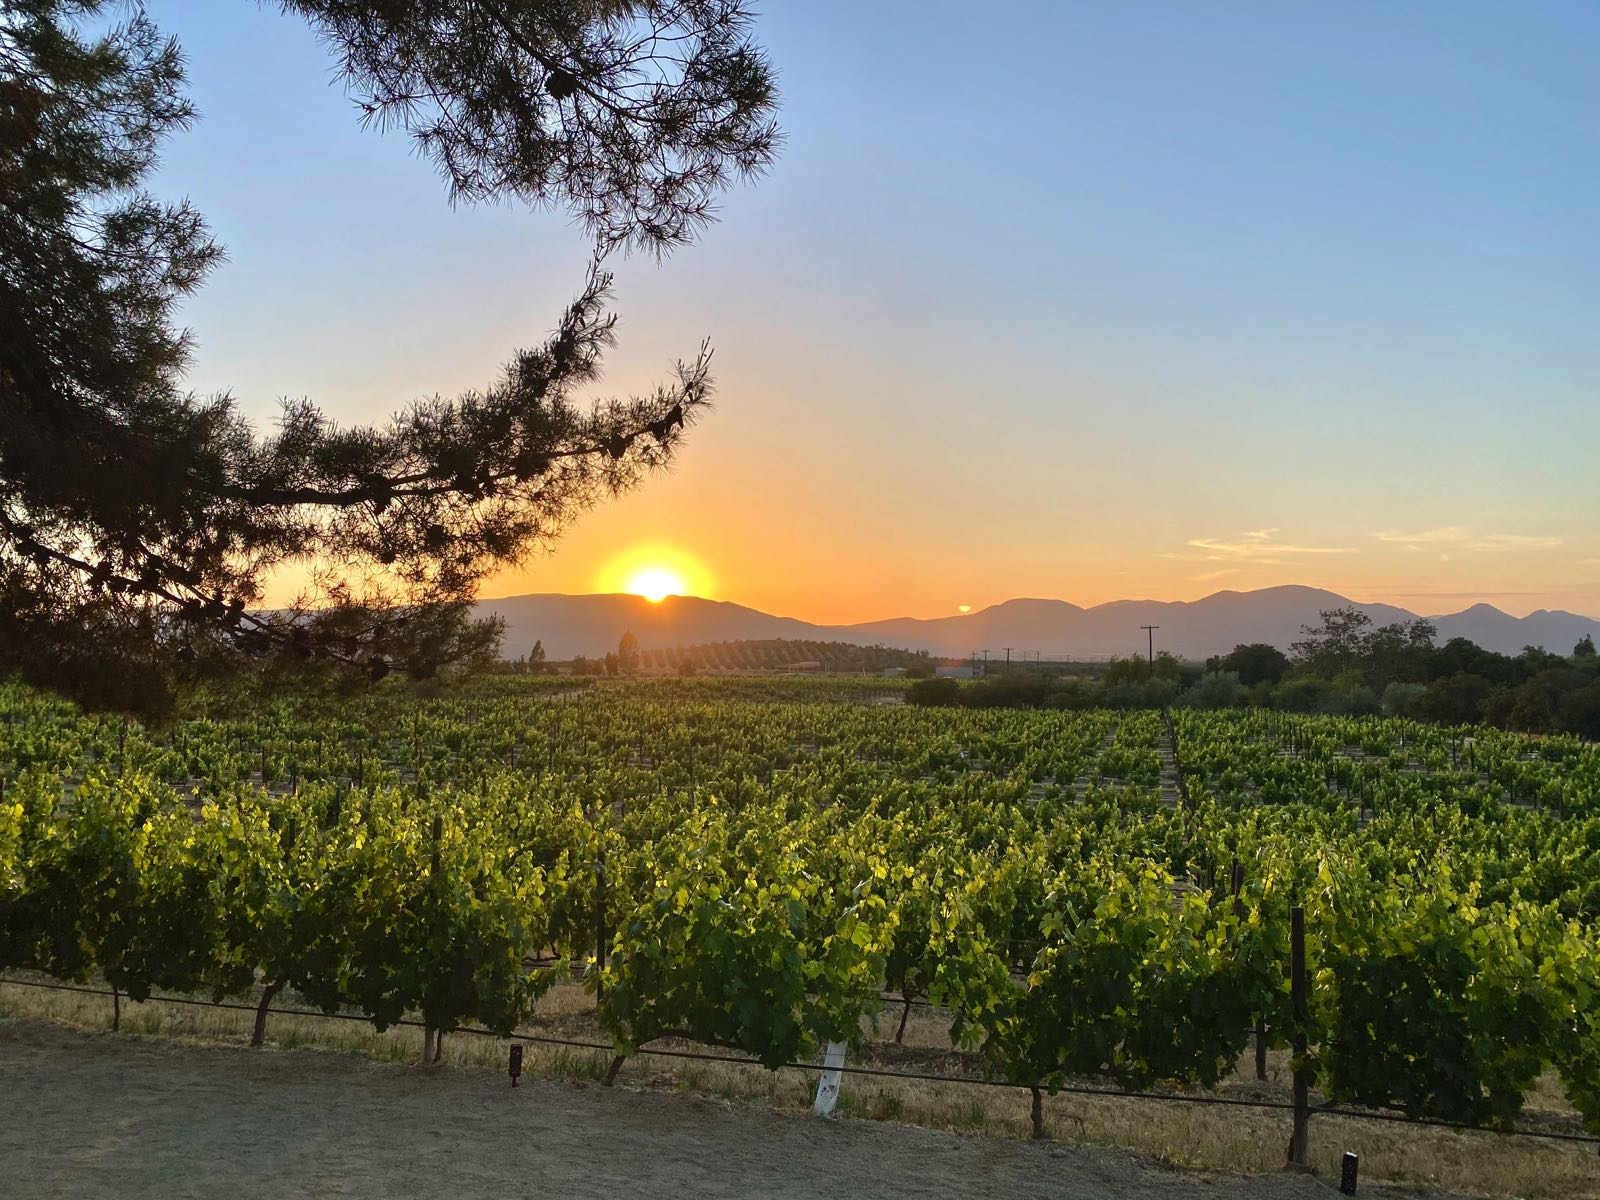 Valle de Guadalupe, Mexico: Complete Travel Guide